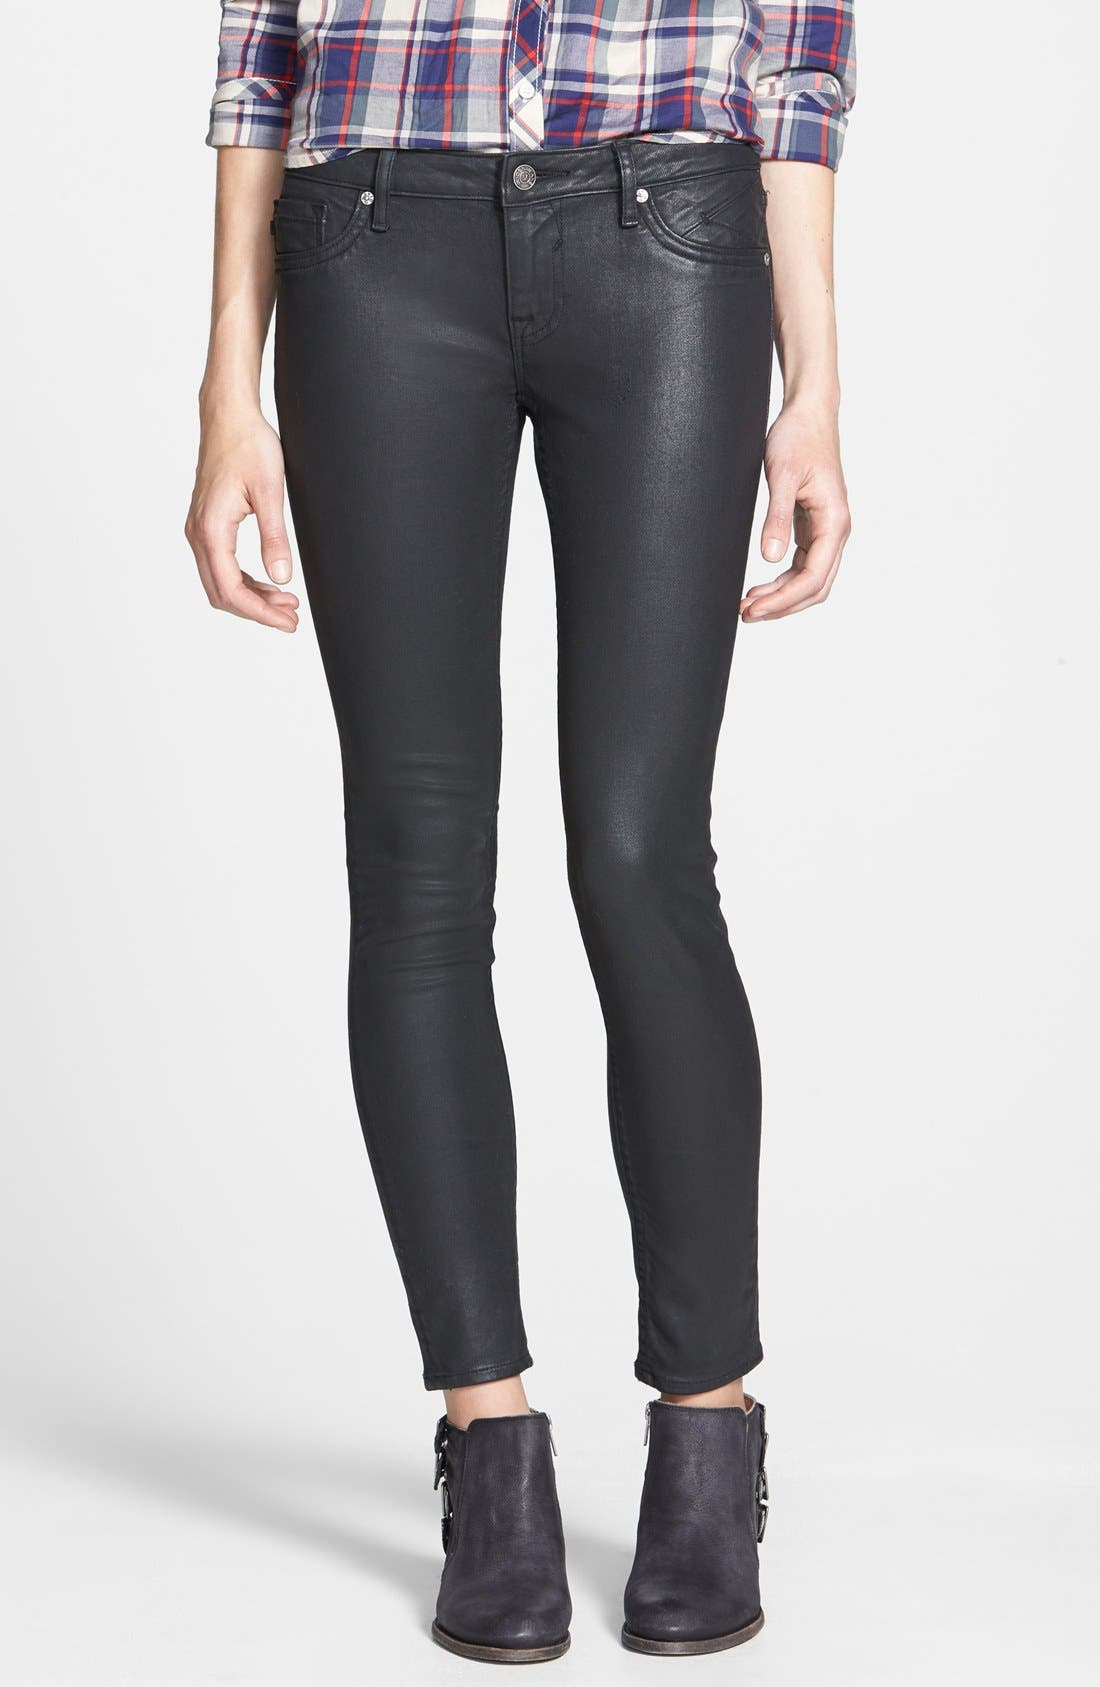 Alternate Image 1 Selected - Vigoss Coated Skinny Jeans (Black)